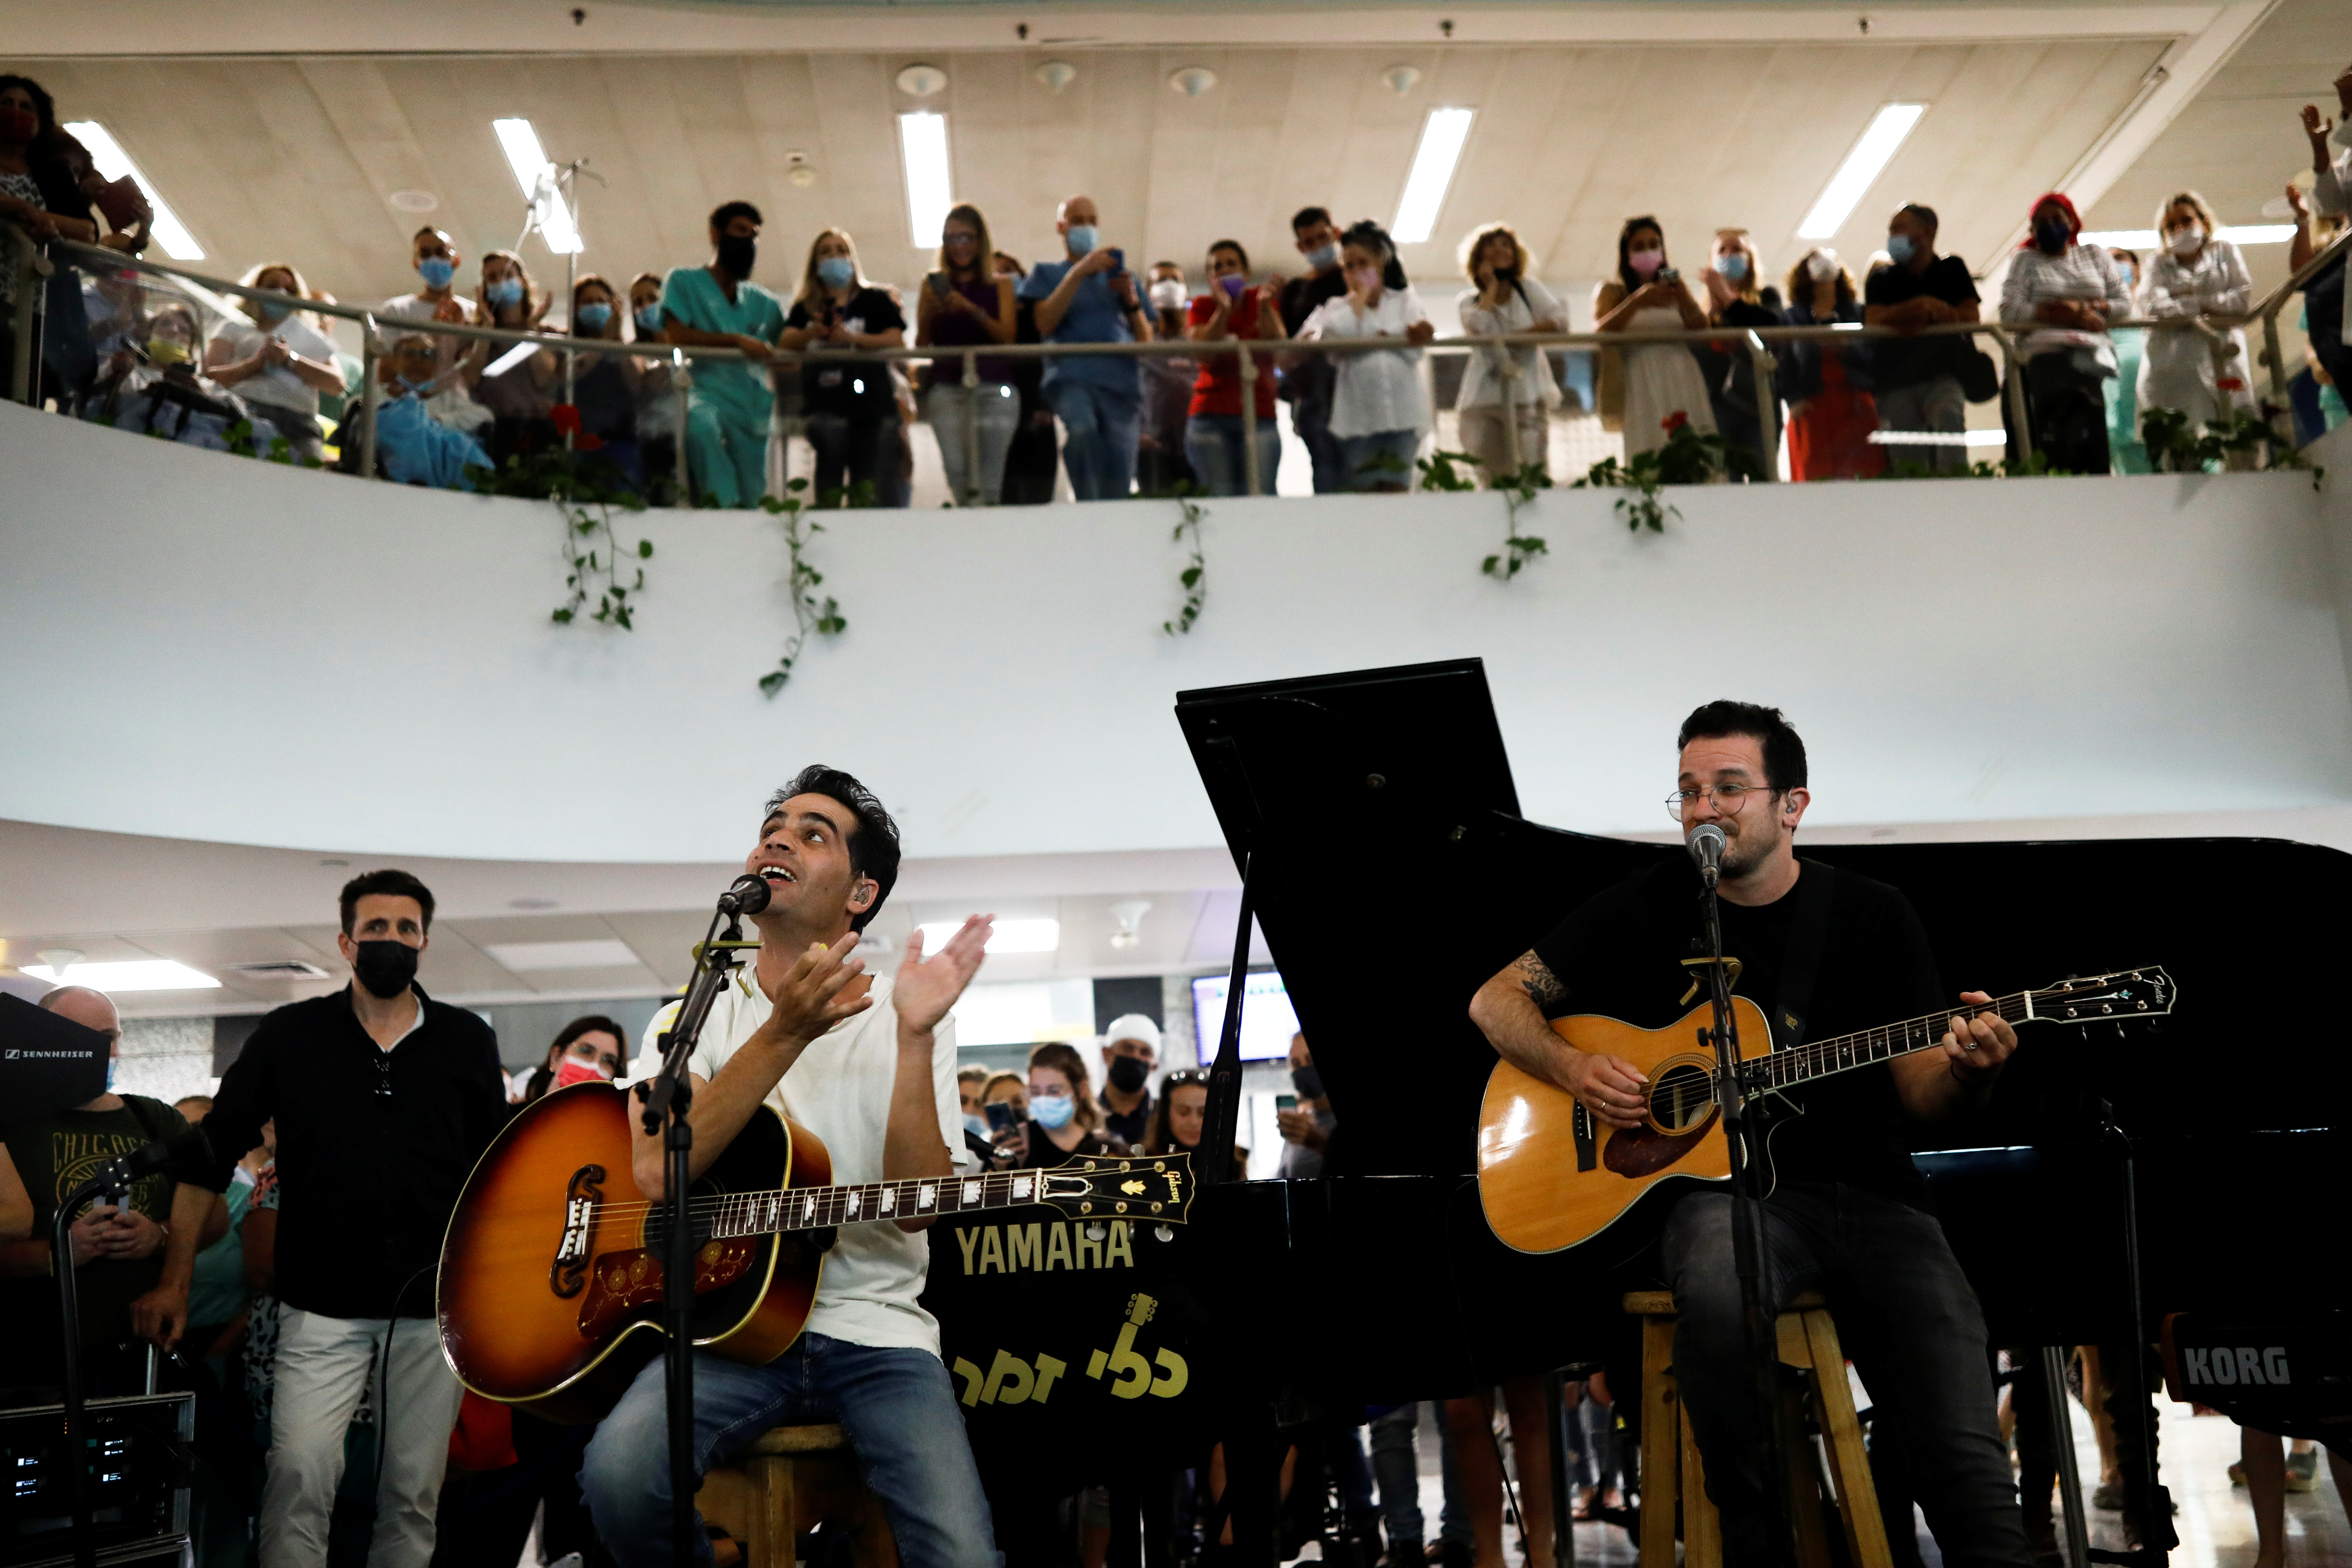 Israeli musician Aviv Geffen performs during an event organised to thank the hospital staff for their work in fighting the coronavirus disease (COVID-19) as Israel further eases its COVID-19 restrictions, at Ichilov hospital, in Tel Aviv, Israel June 1, 2021. REUTERS/Corinna Kern